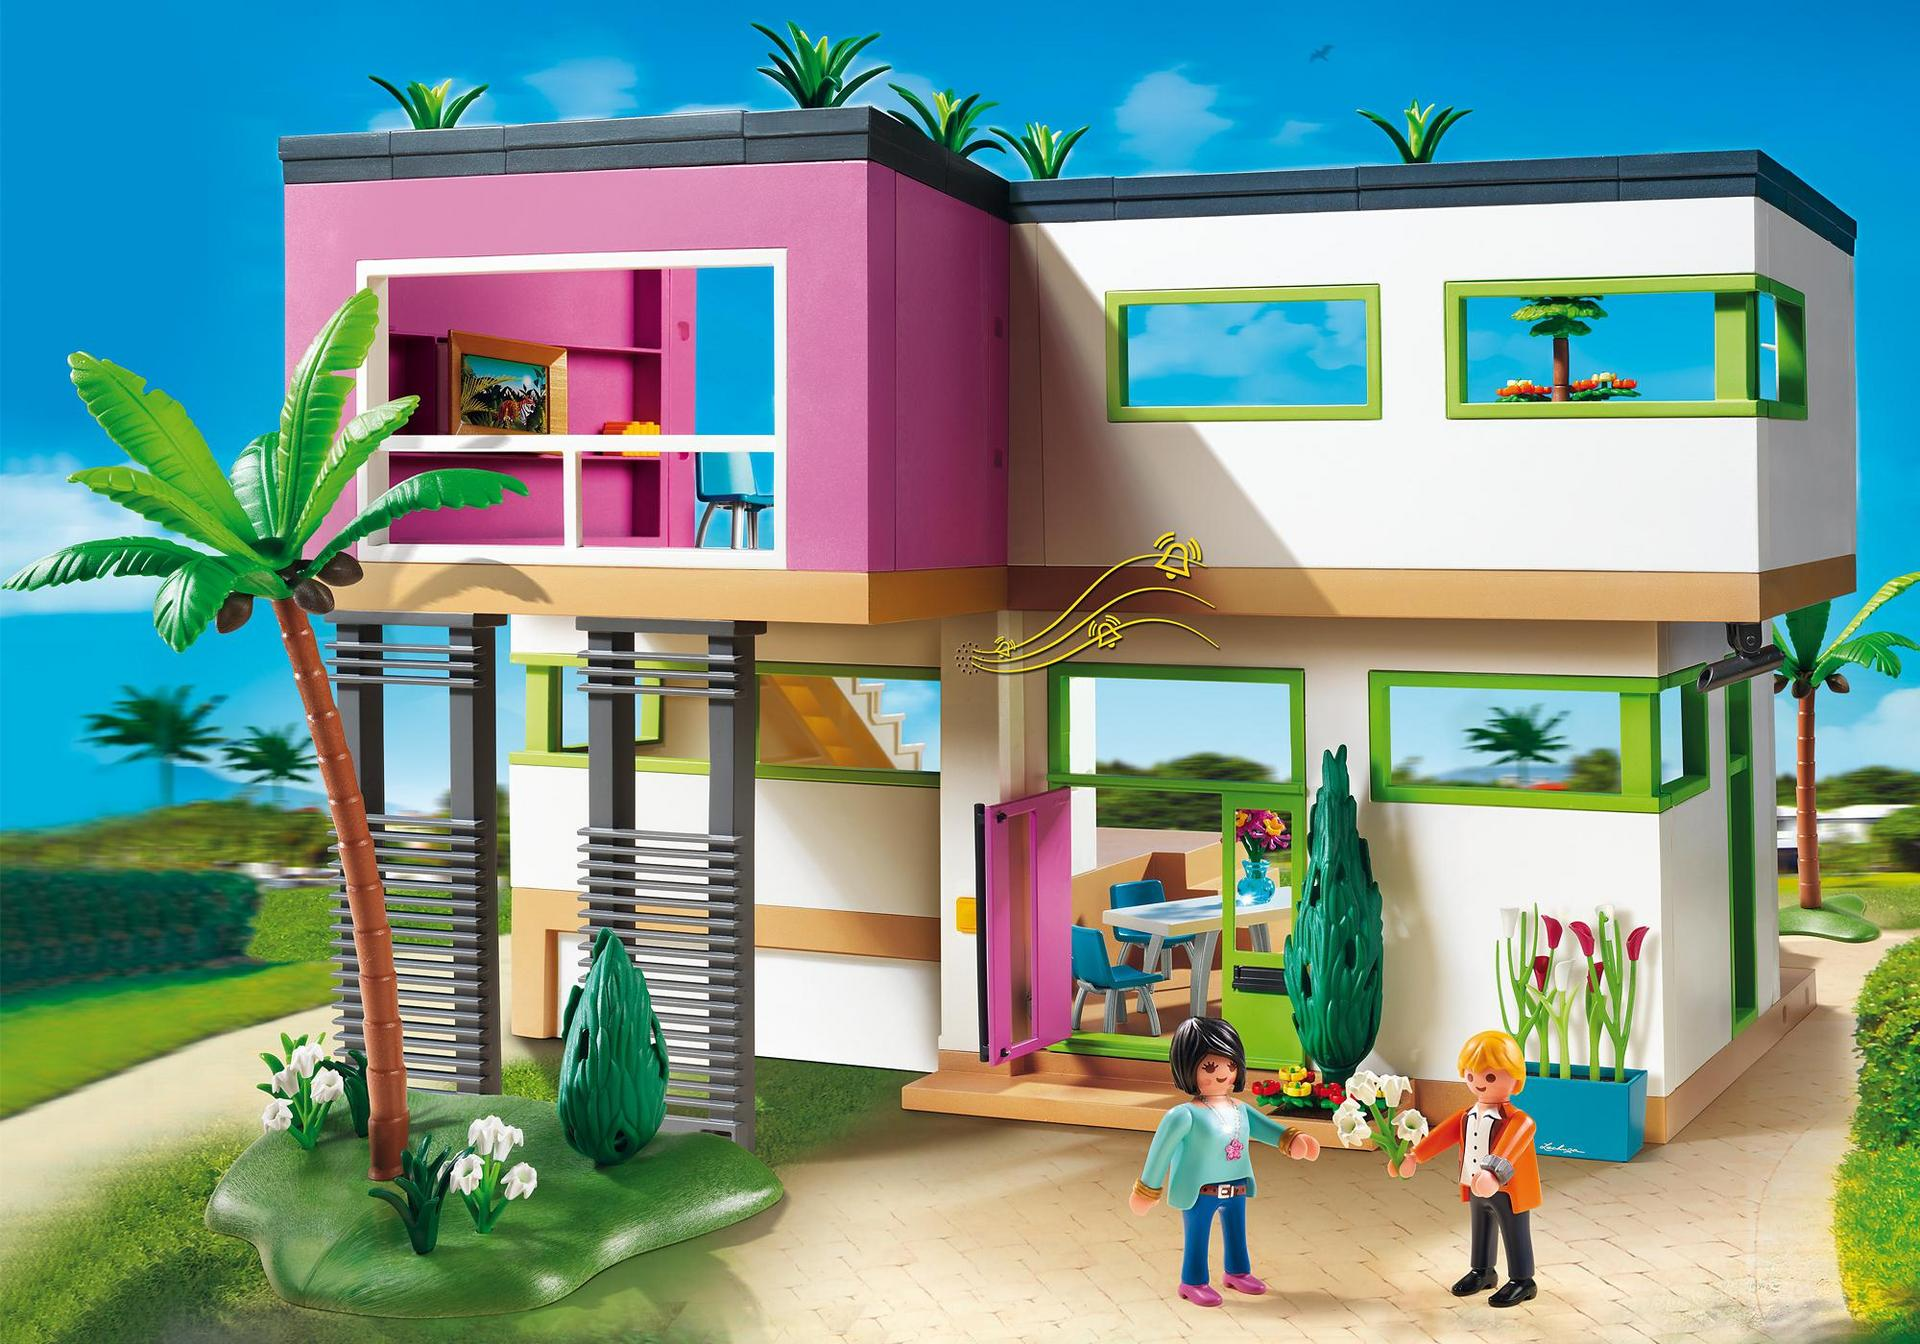 Maison moderne 5574 playmobil france for La maison moderne